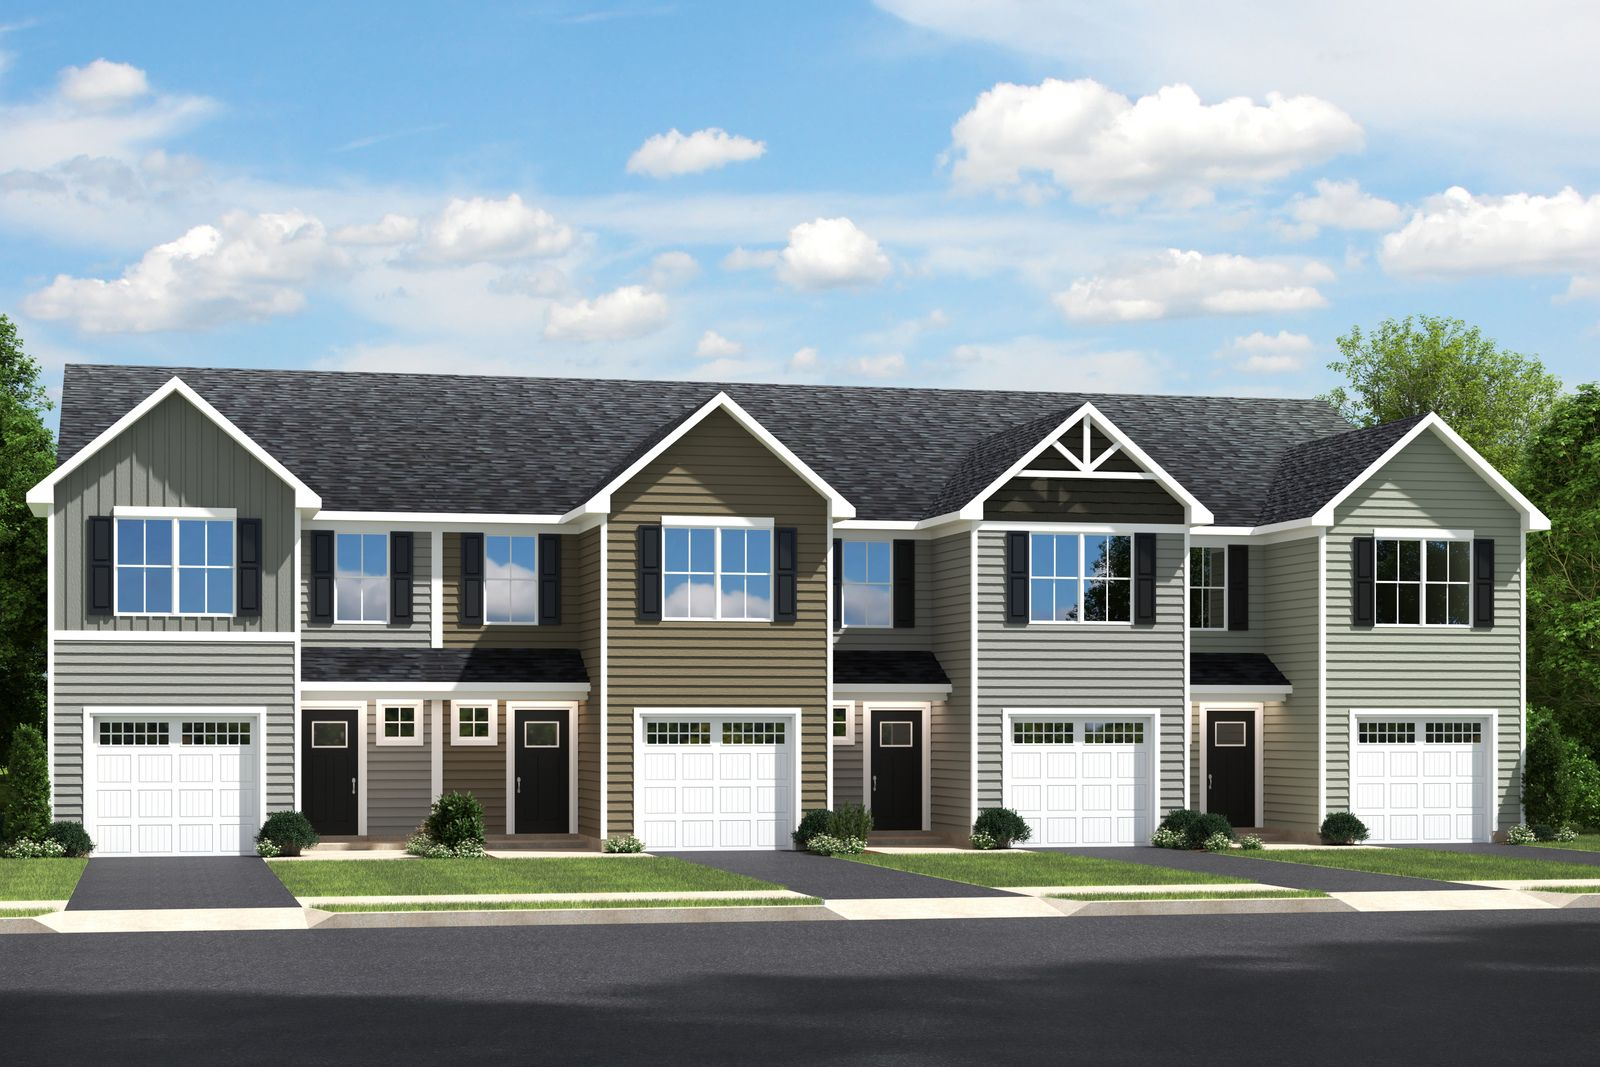 CEDAR RIDGE AT WOODALL - COMING SUMMER 2021:The best value in the greater Nashville area only 1 mile to I-40! Brand new, low-maintenance townhomes with 1-car garages included – all from themid $200s.Join the VIP list today!